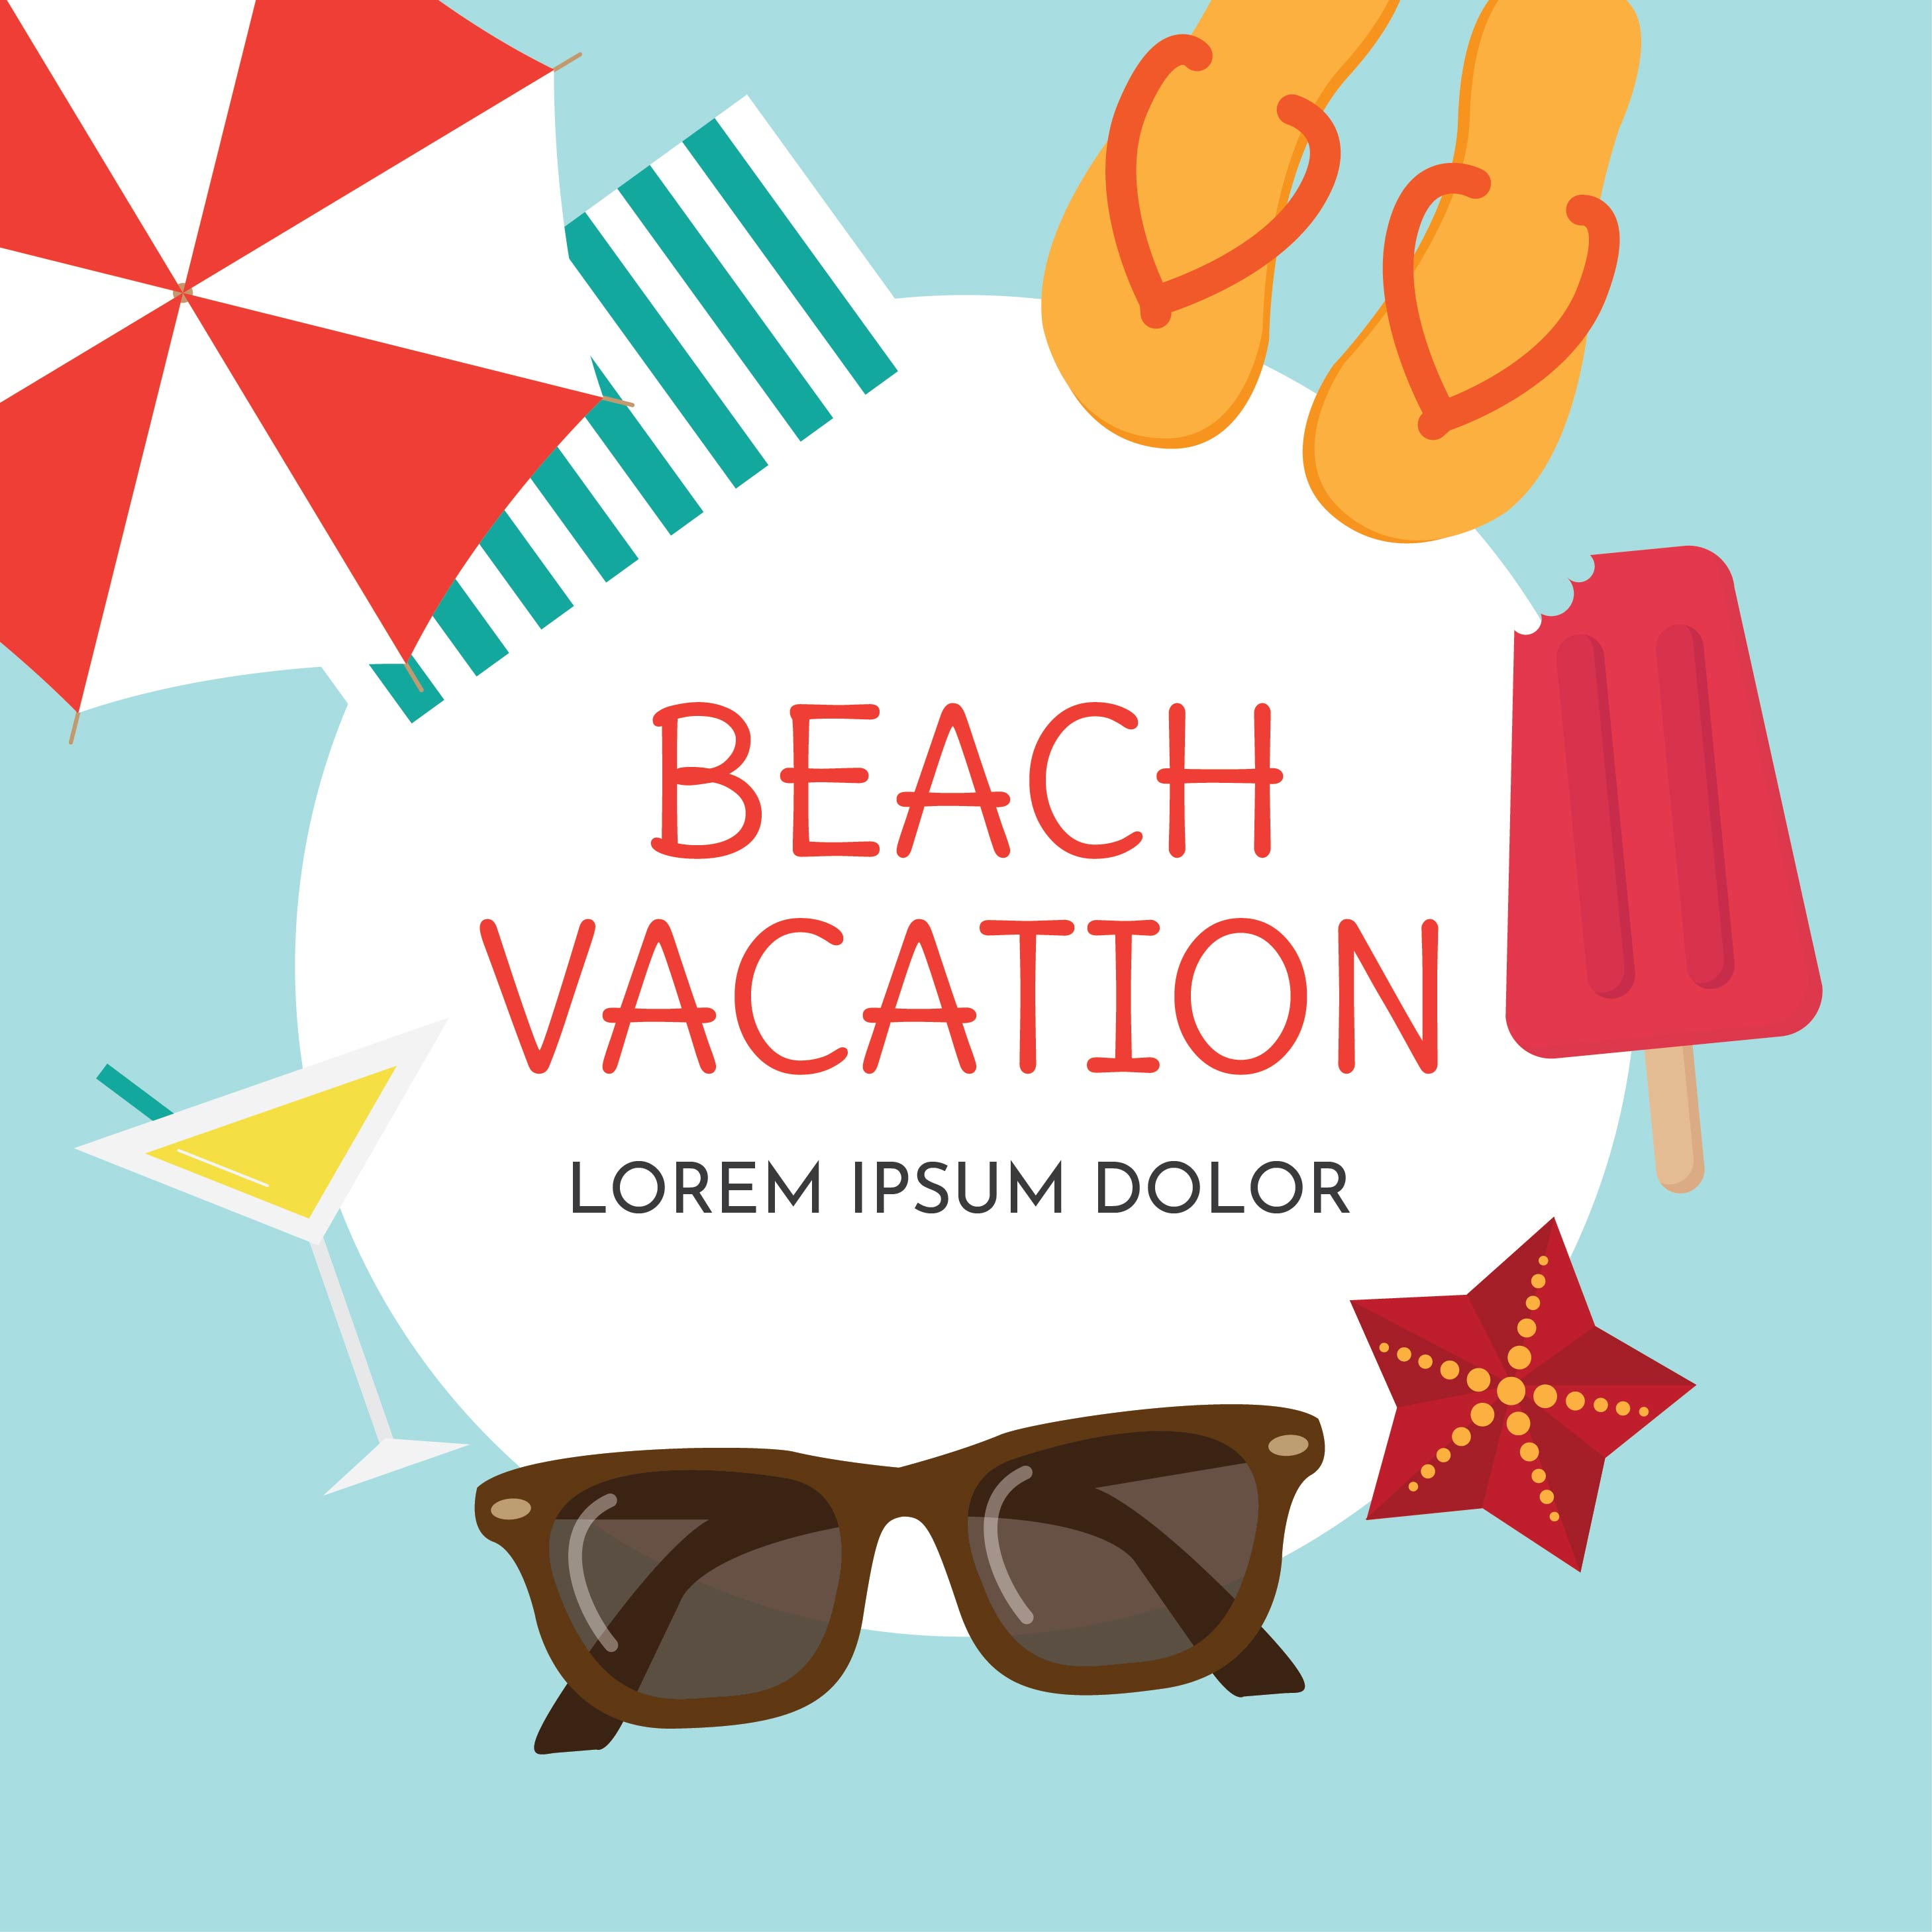 Beach Vacation Background - Download Free Vectors, Clipart ...